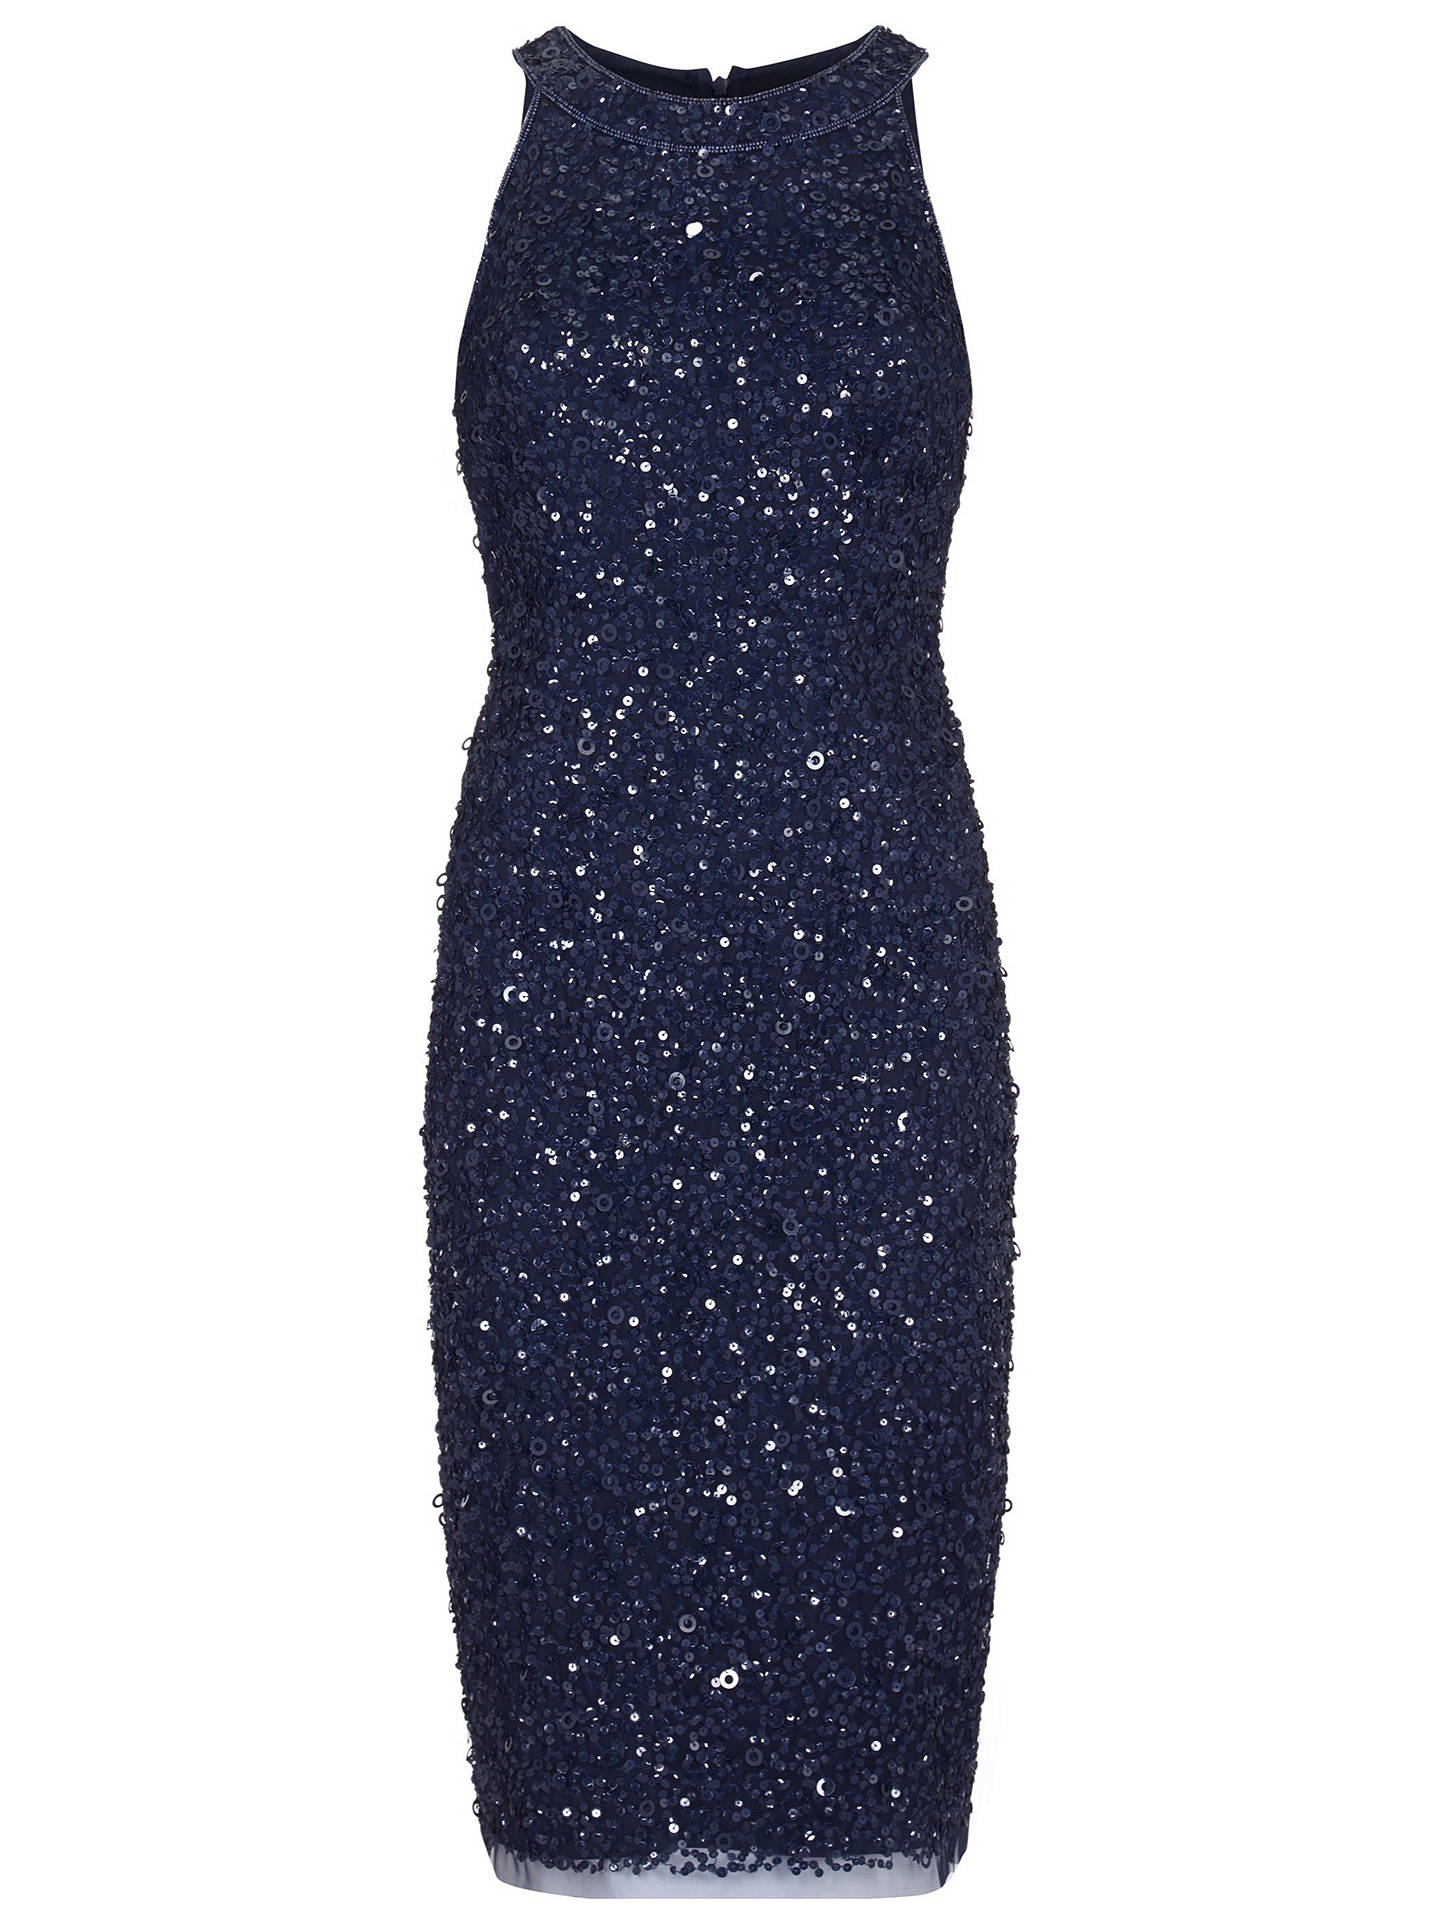 Buy Adrianna Papell Short Beaded Halter Dress, Navy, 8 Online at johnlewis.com